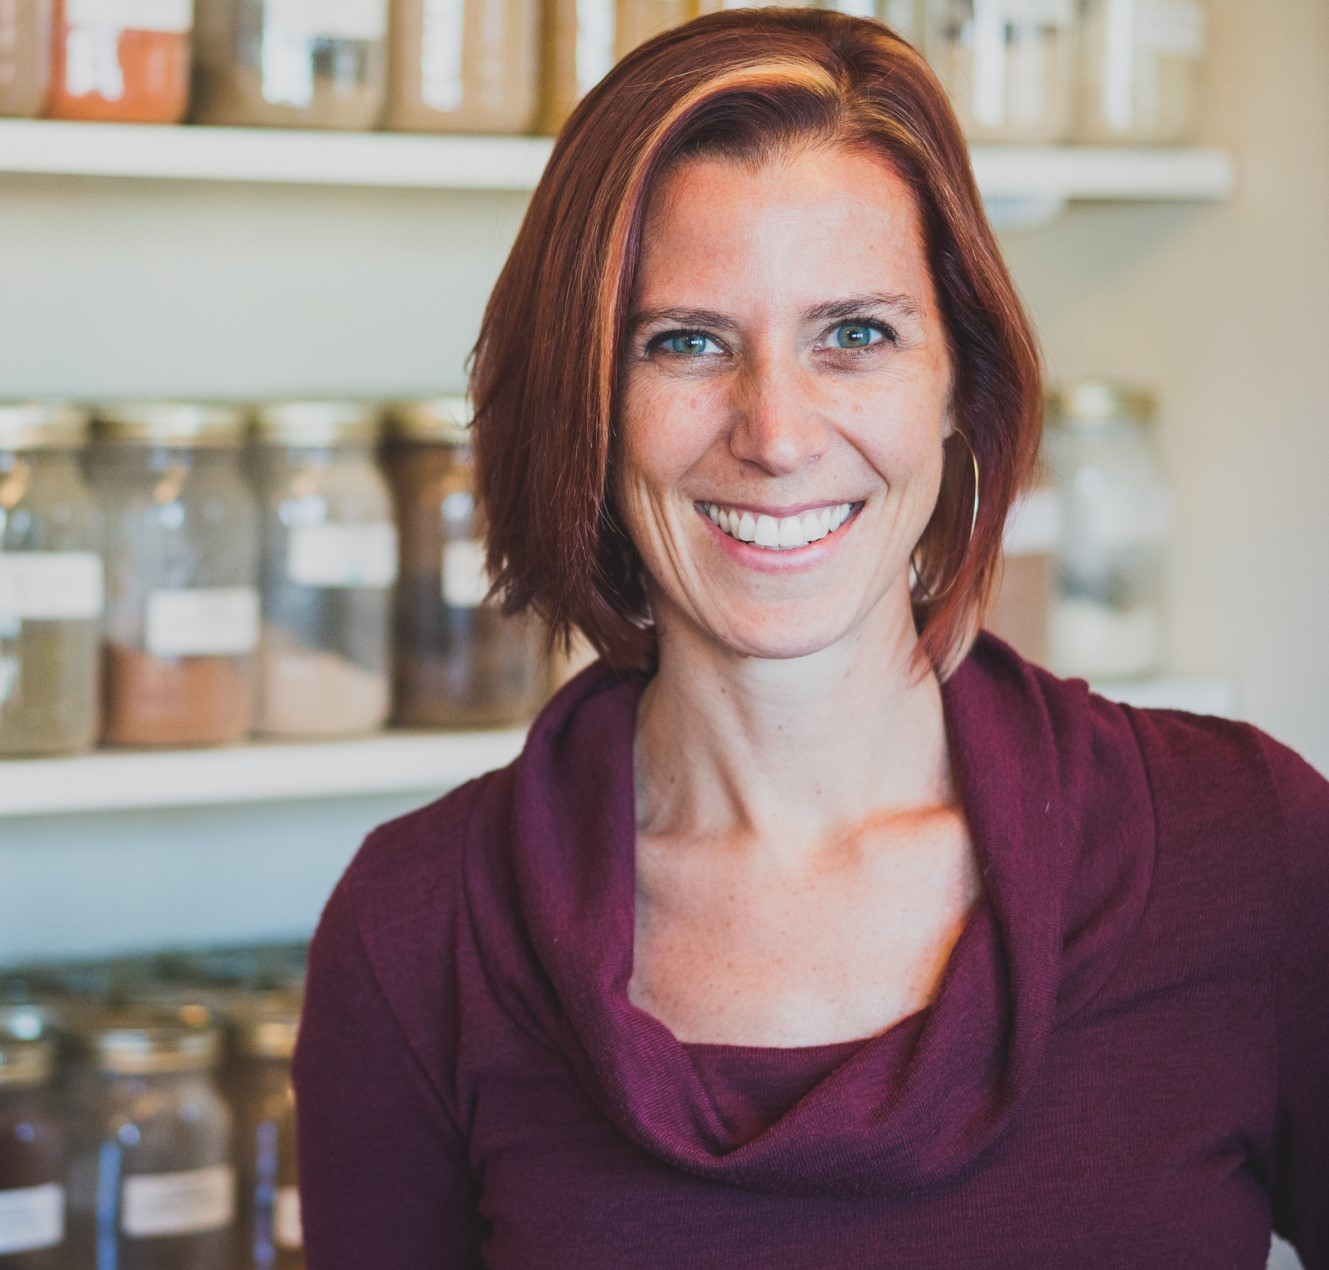 Brodie Welch-Licensed Acupuncturist, board-certified herbalist, Chinese Medicine expert, and Podcast host